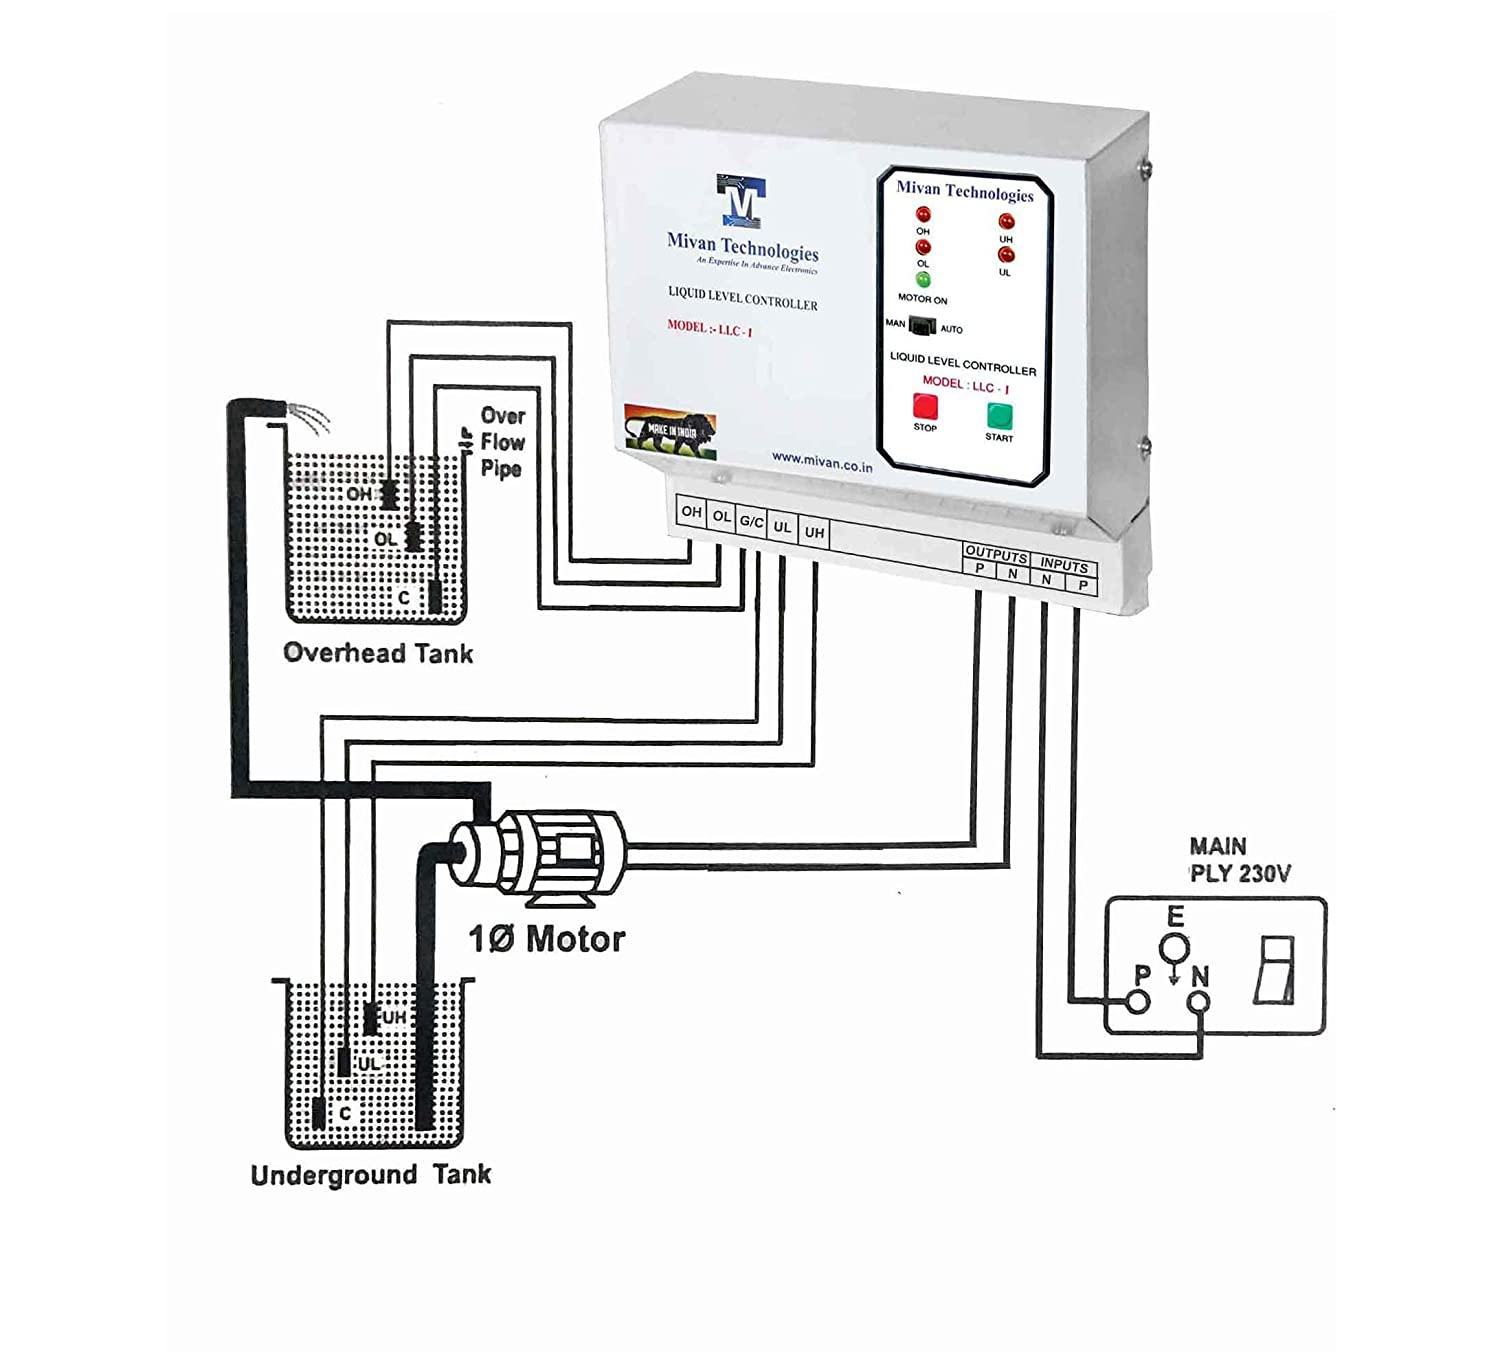 Mivan Technologies Fully Automatic Water Level Controller Pid Wiring Diagram 230v Indicators For Up Down Tank With 6 Sensors Suitable Motor Upto 5hp Supply 230vac